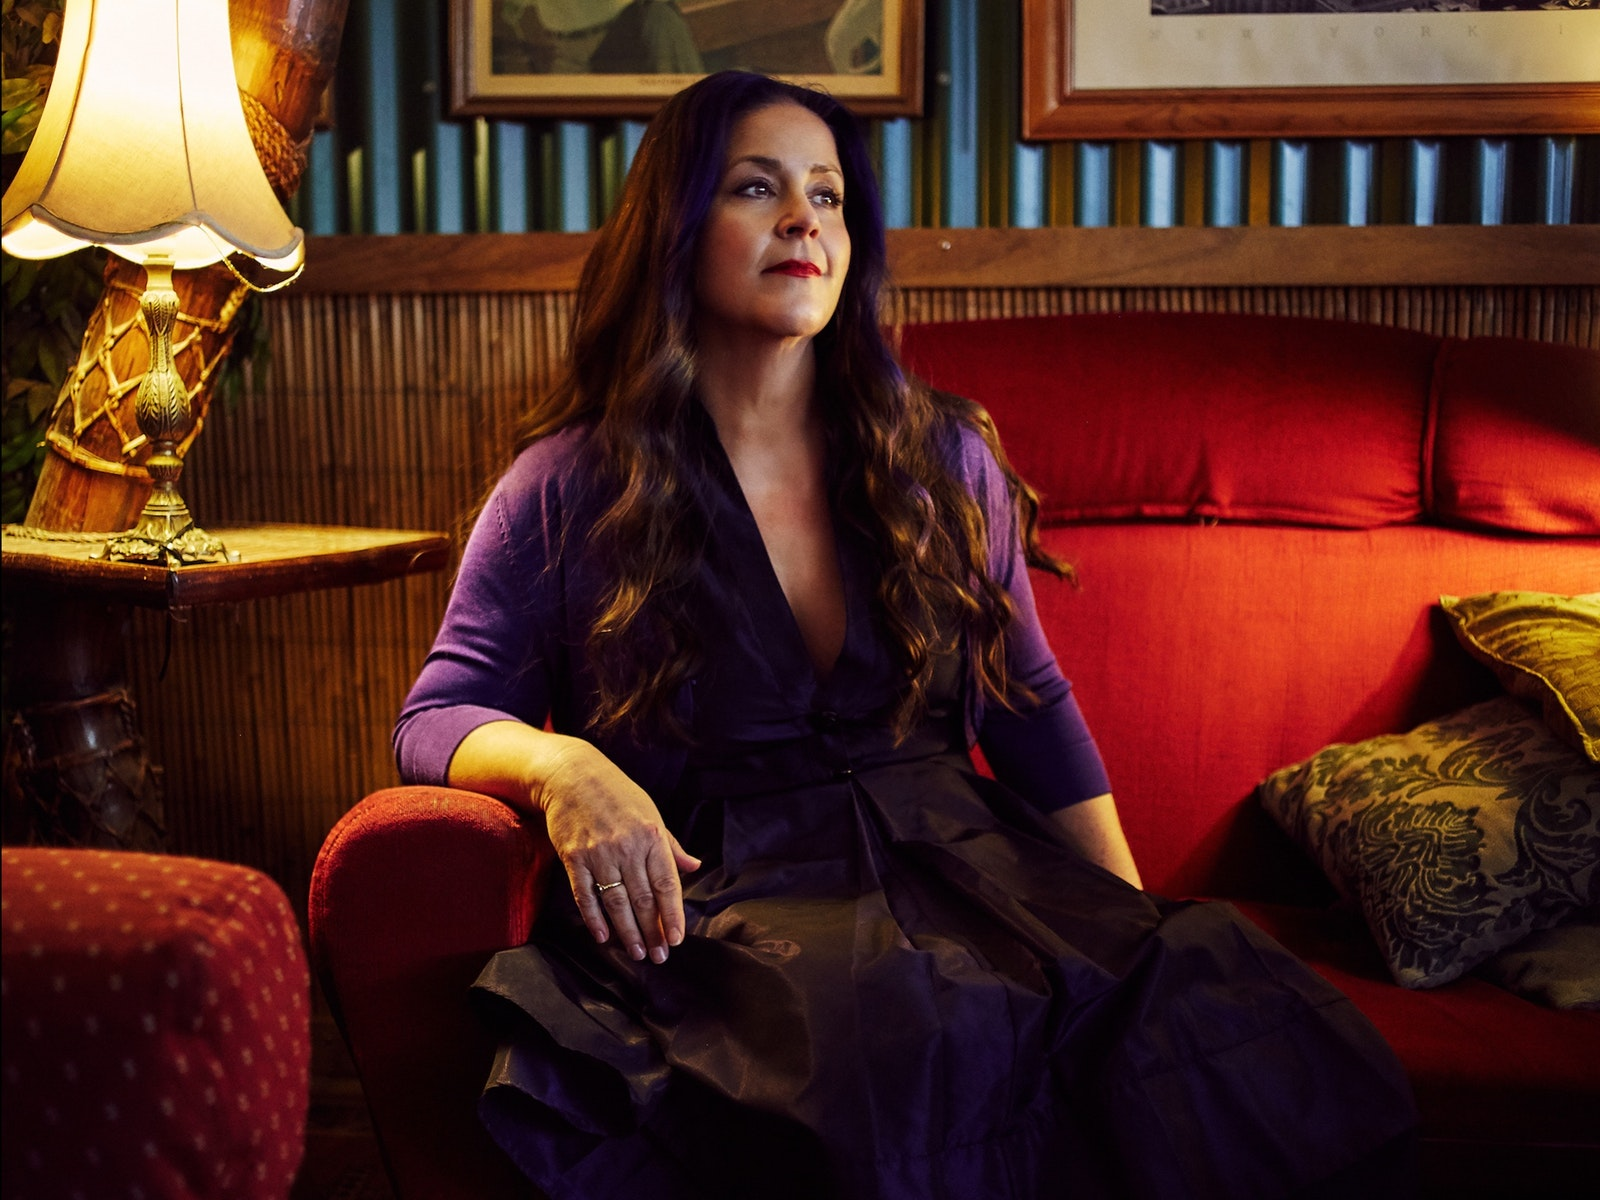 Michelle Nicole is a regular at Bird's, performing again on 19 October